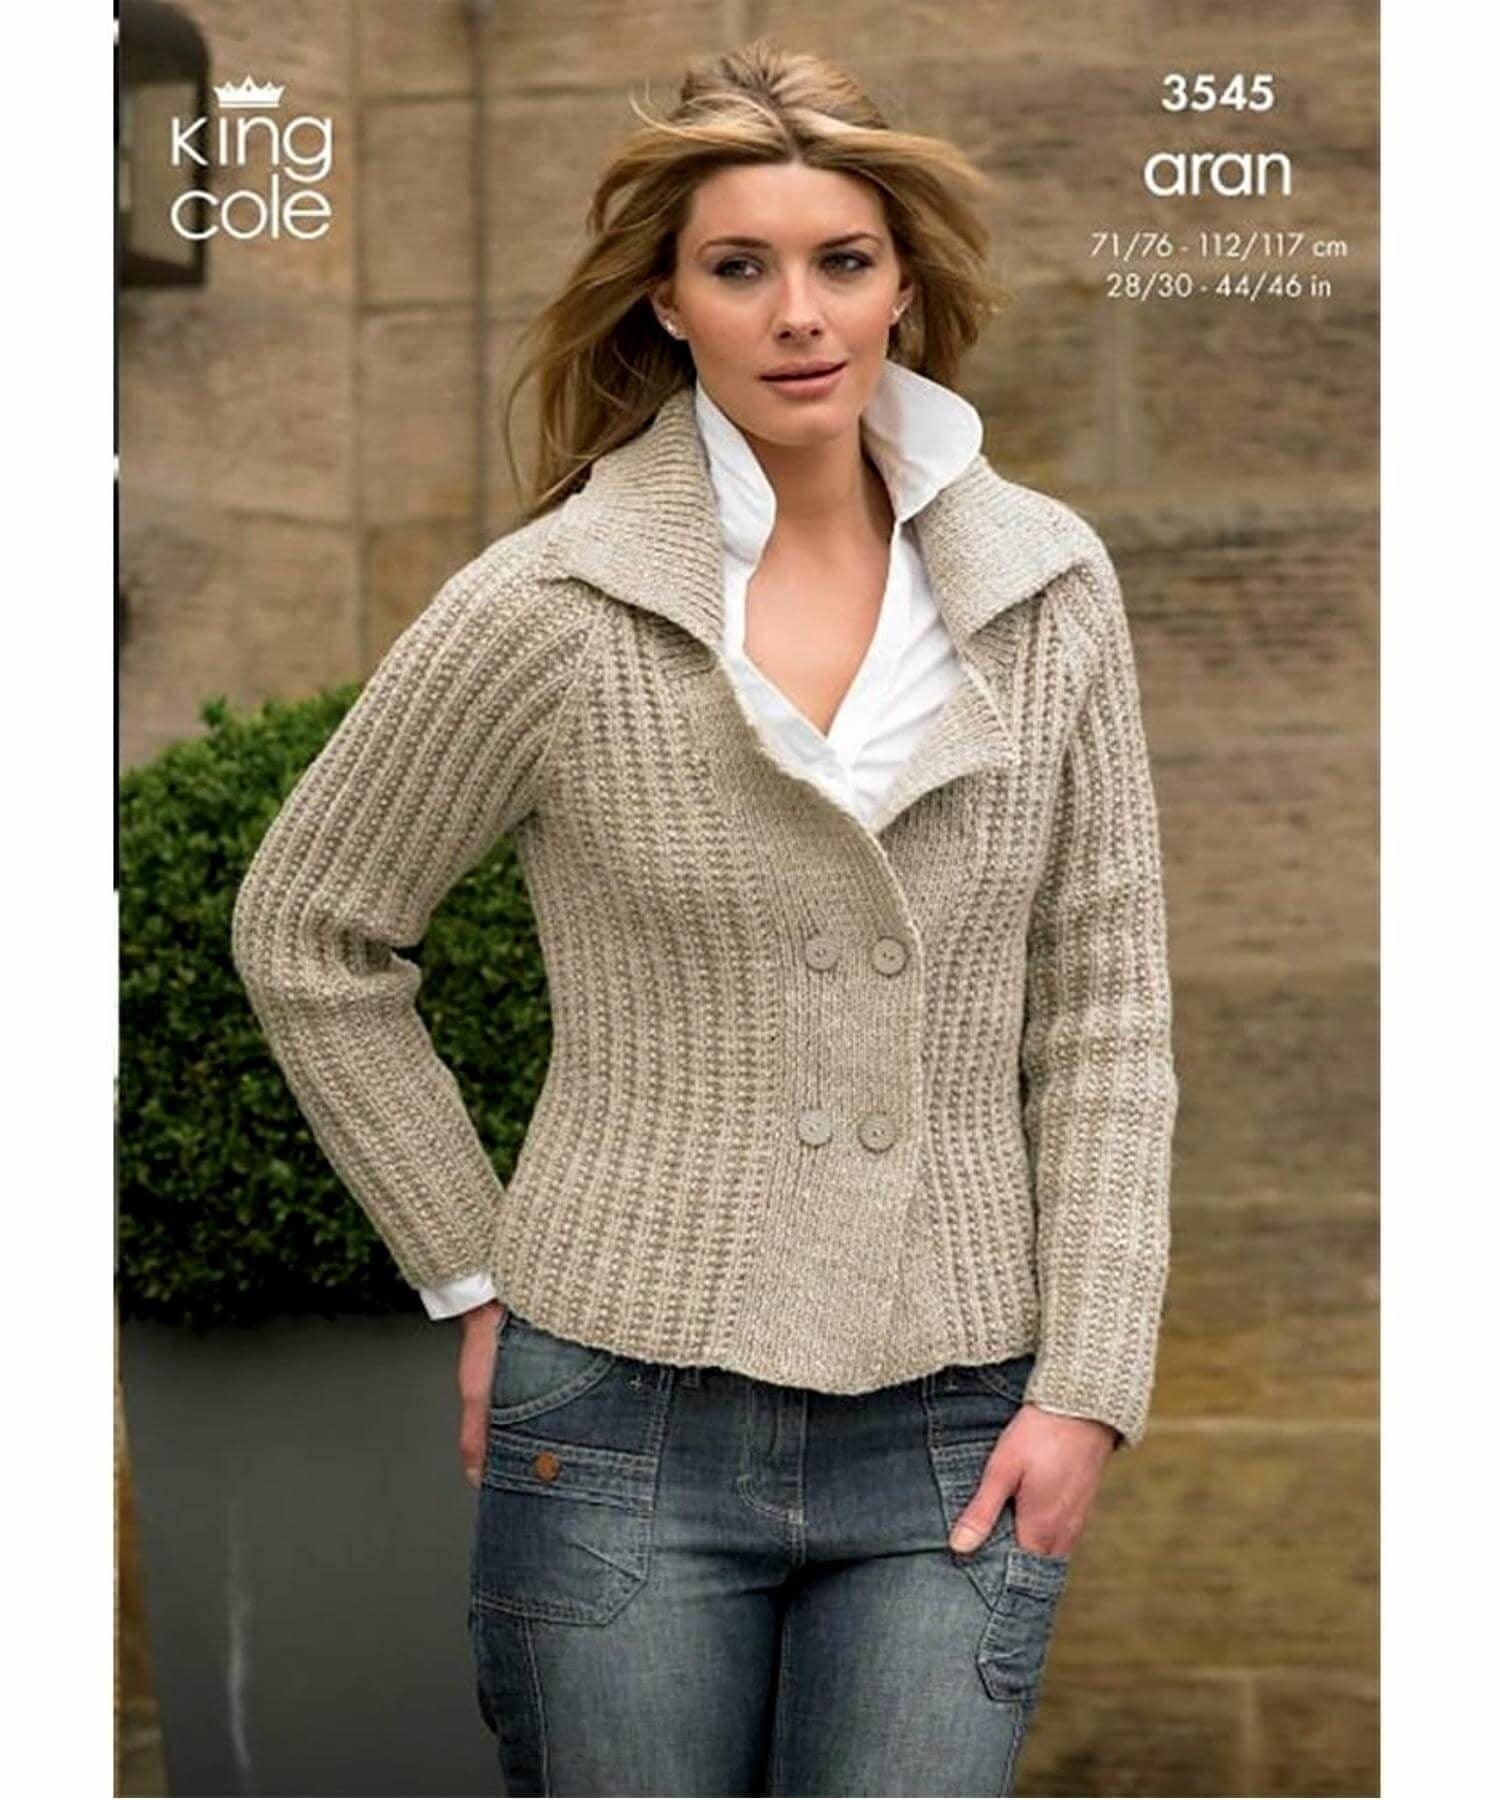 King Cole Aran Pattern 3545 - [Springwools] - Knitting - Irish Gifts